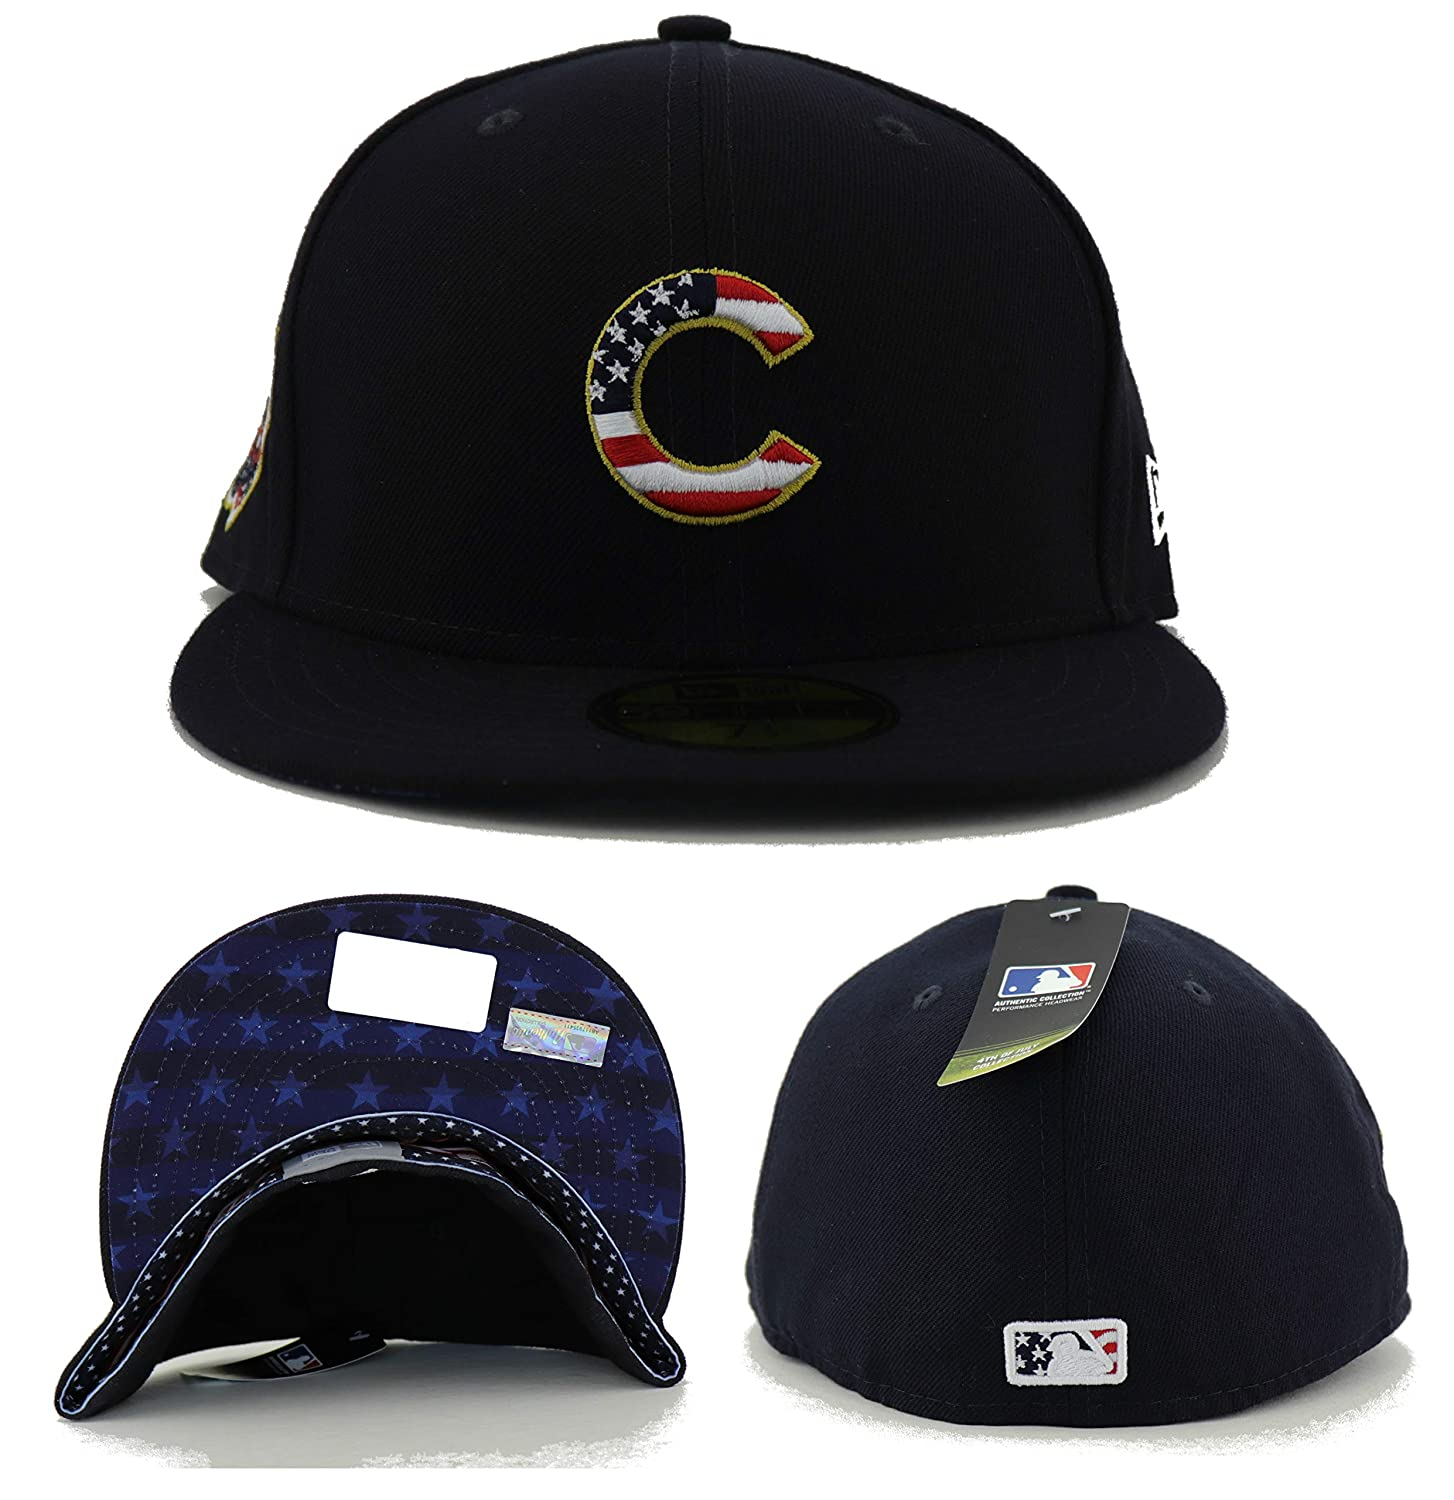 502a7ebc79fea6 Amazon.com: New Era Chicago Cubs 2018 July 4th Stars and Stripes 59FIFTY On  Field Fitted Hat: Clothing